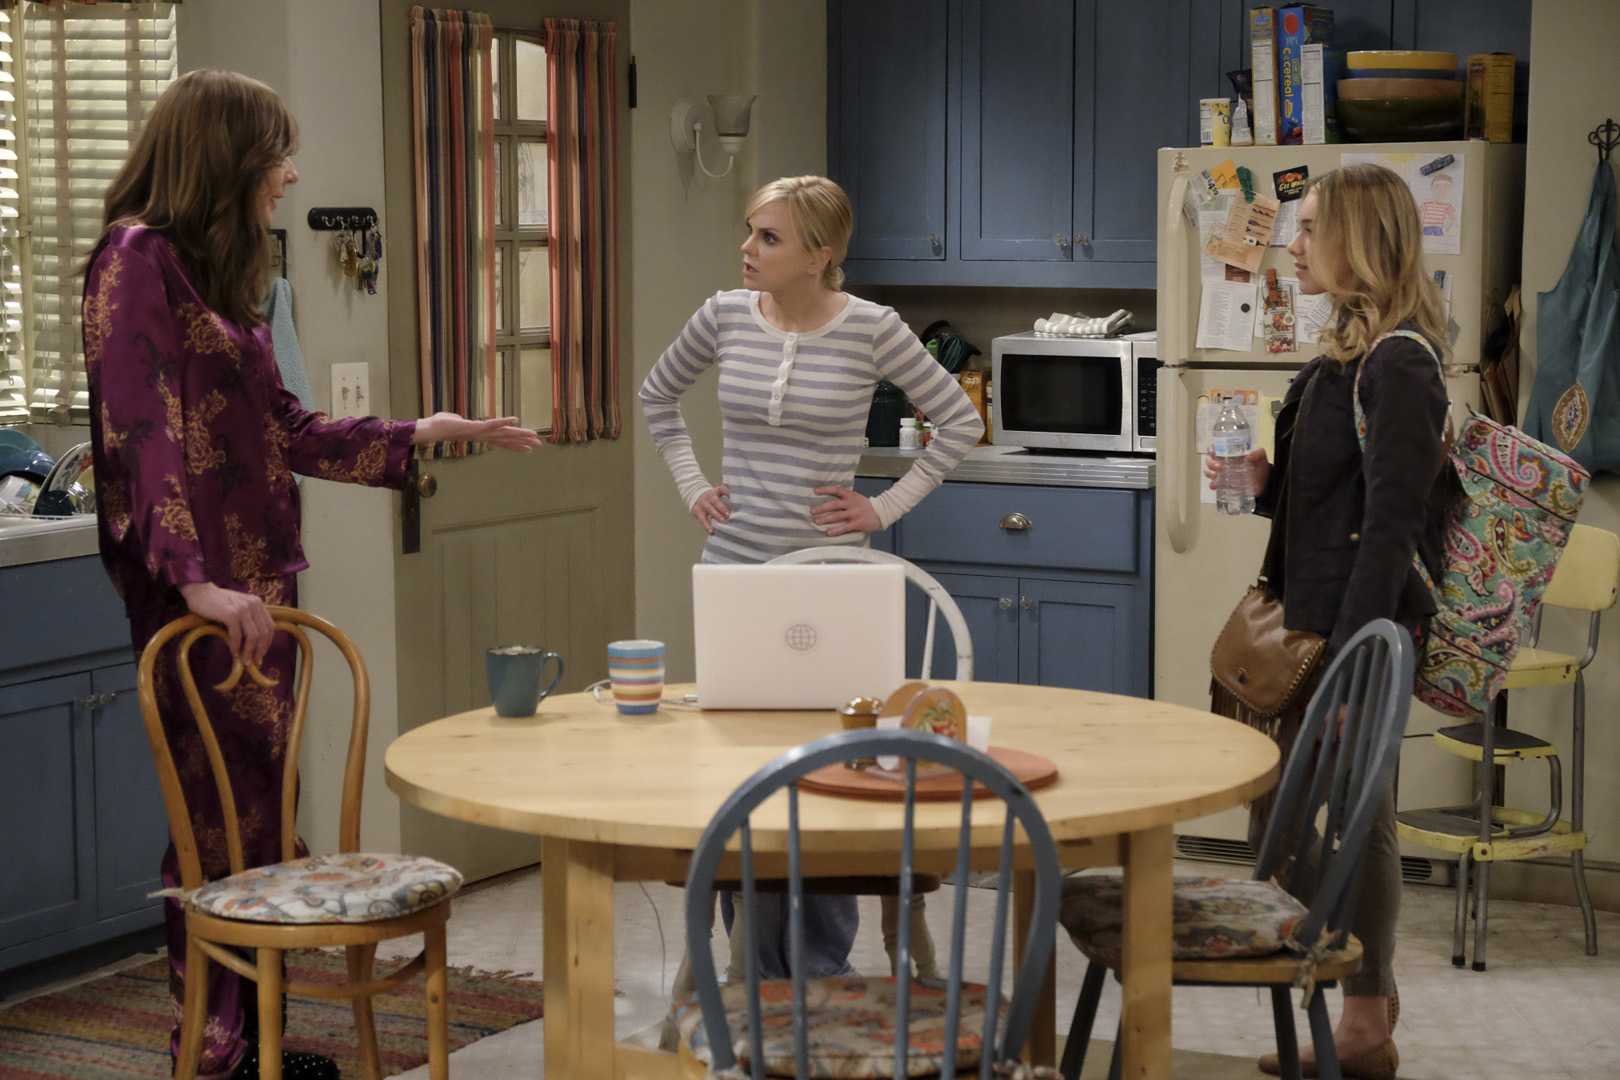 Violet walks into the kitchen to share big news with Bonnie and Christy.